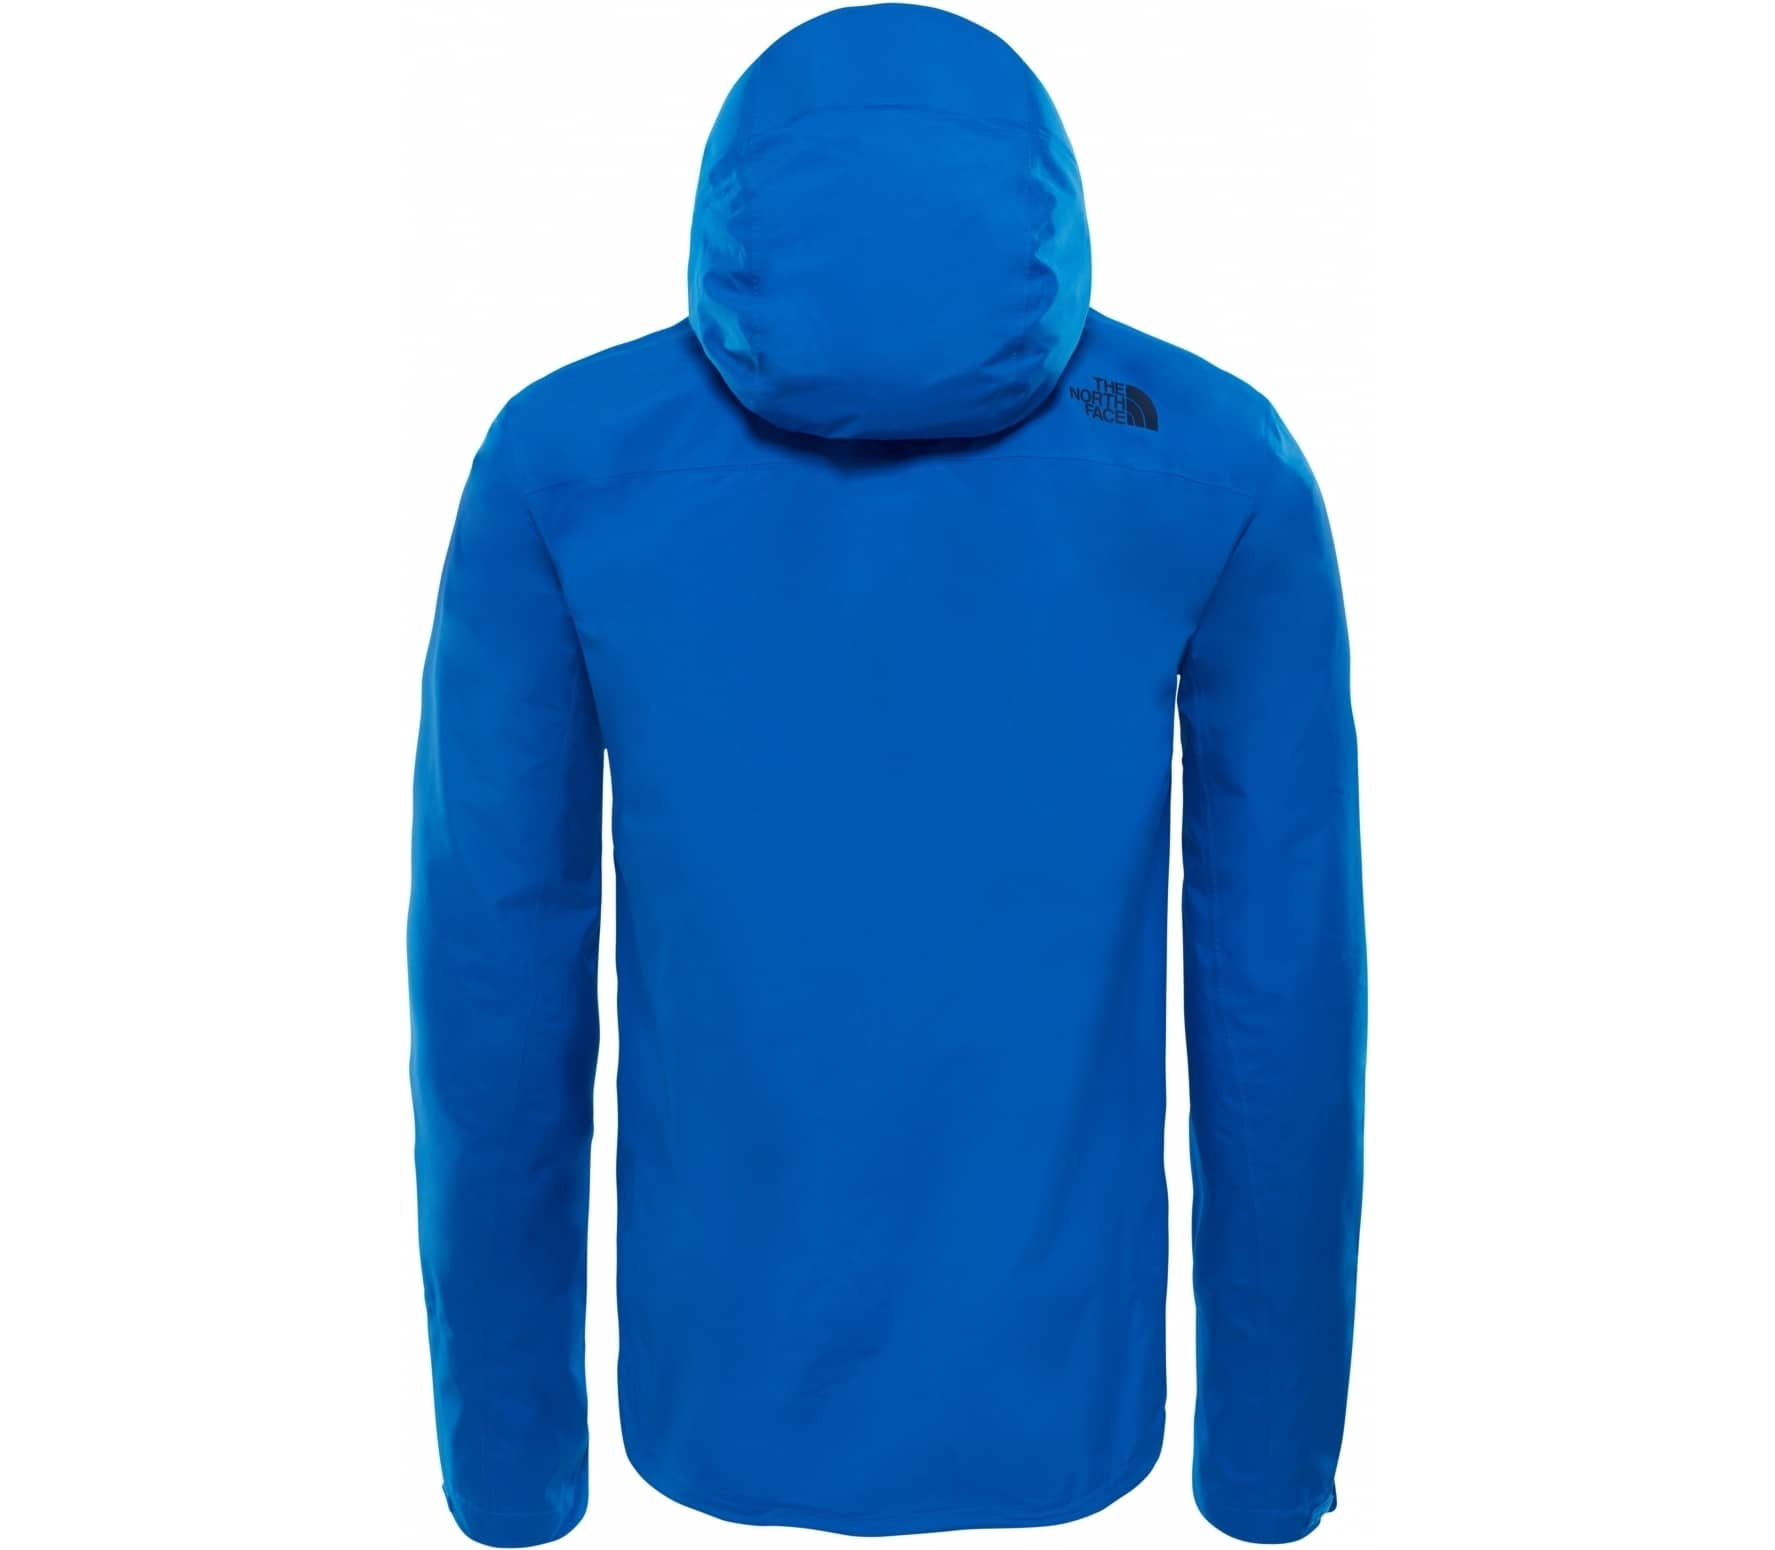 ac7c722415ef The North Face - Dryzzle Herren Regenjacke (blau) im Online Shop von ...